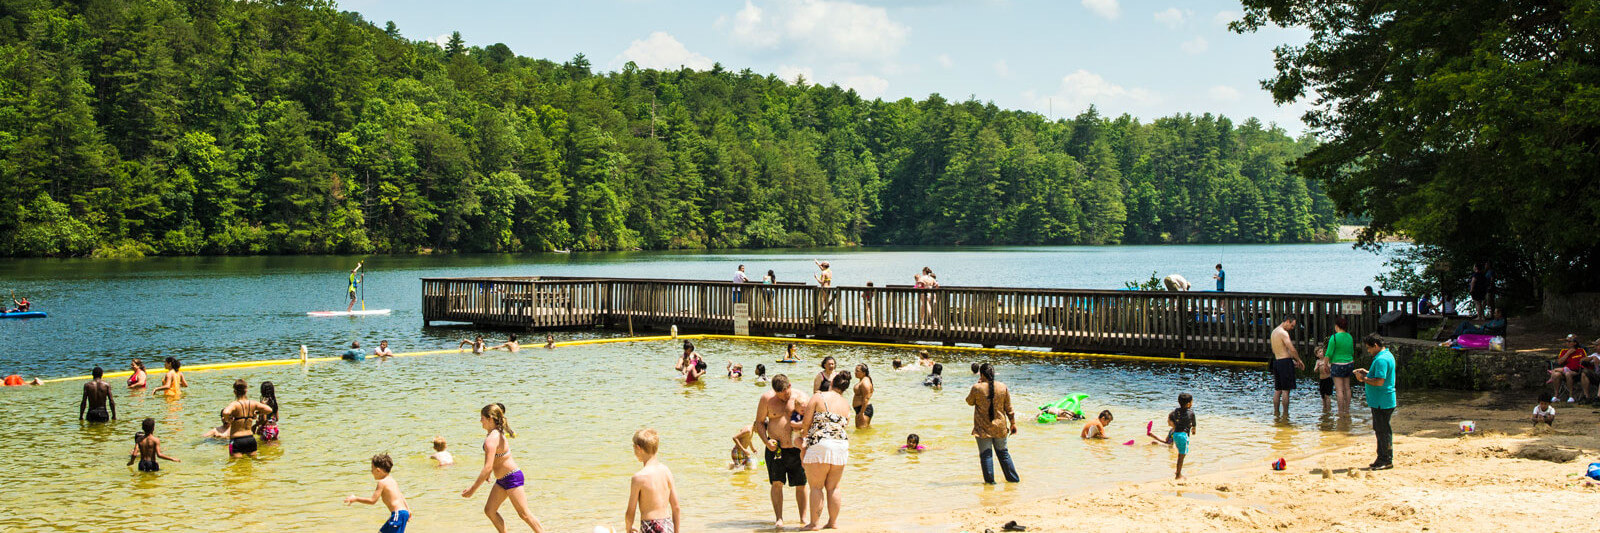 Unicoi Adventure Lodge Homepage Slider 6